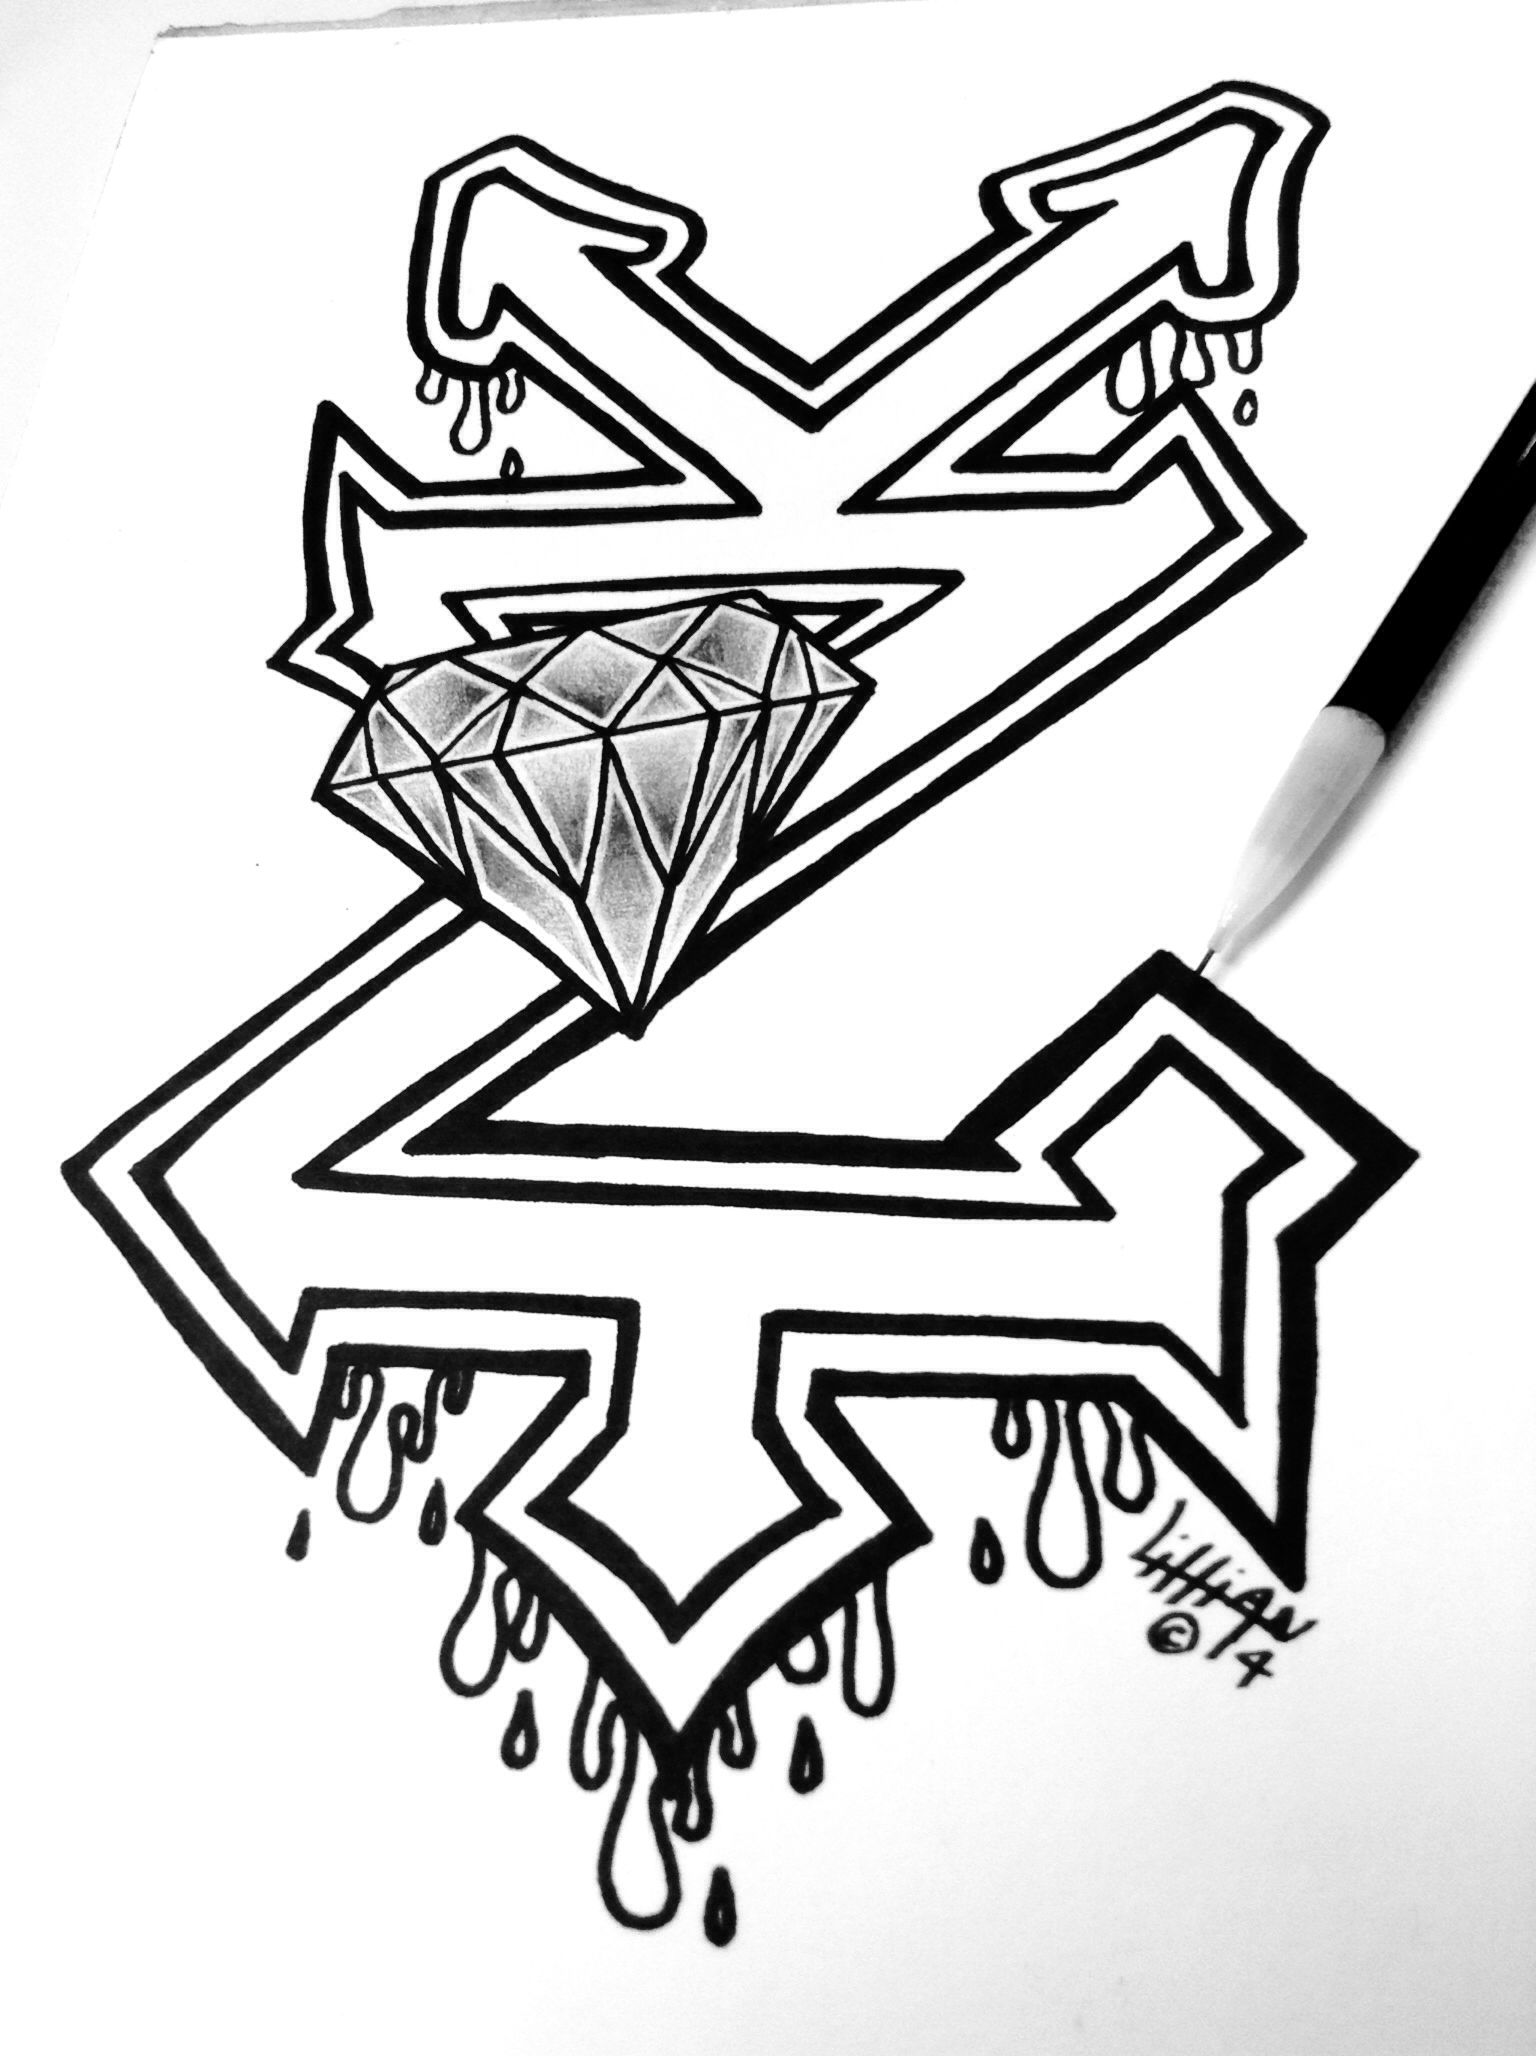 Drawing of zooyork and diamond logos together by lillian